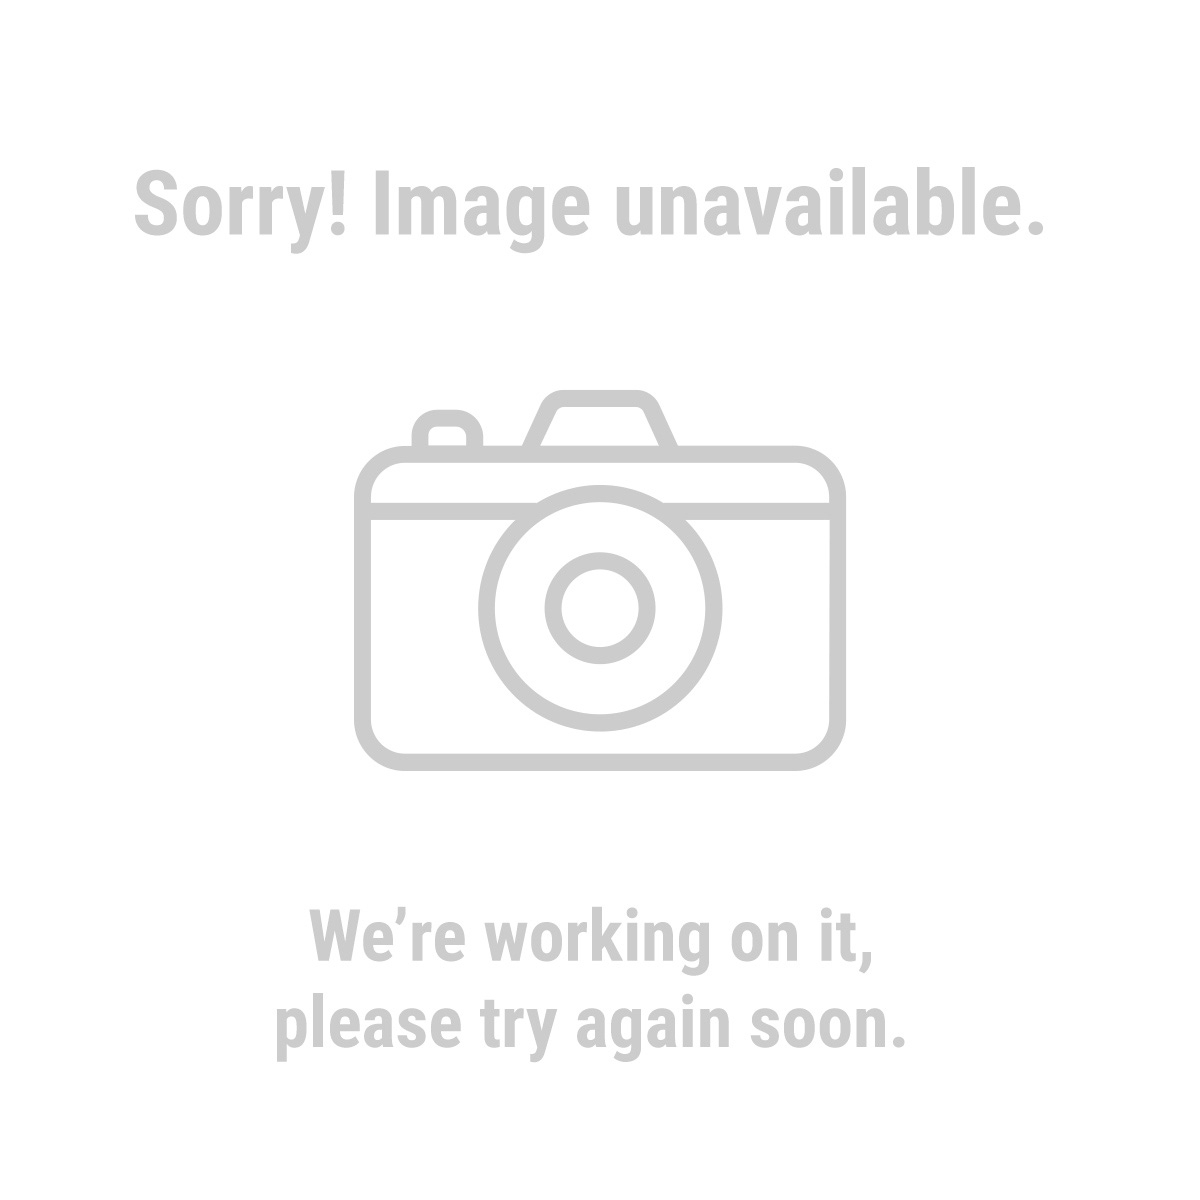 Western Safety 90909 Coated Rubber Grip Gloves, Medium